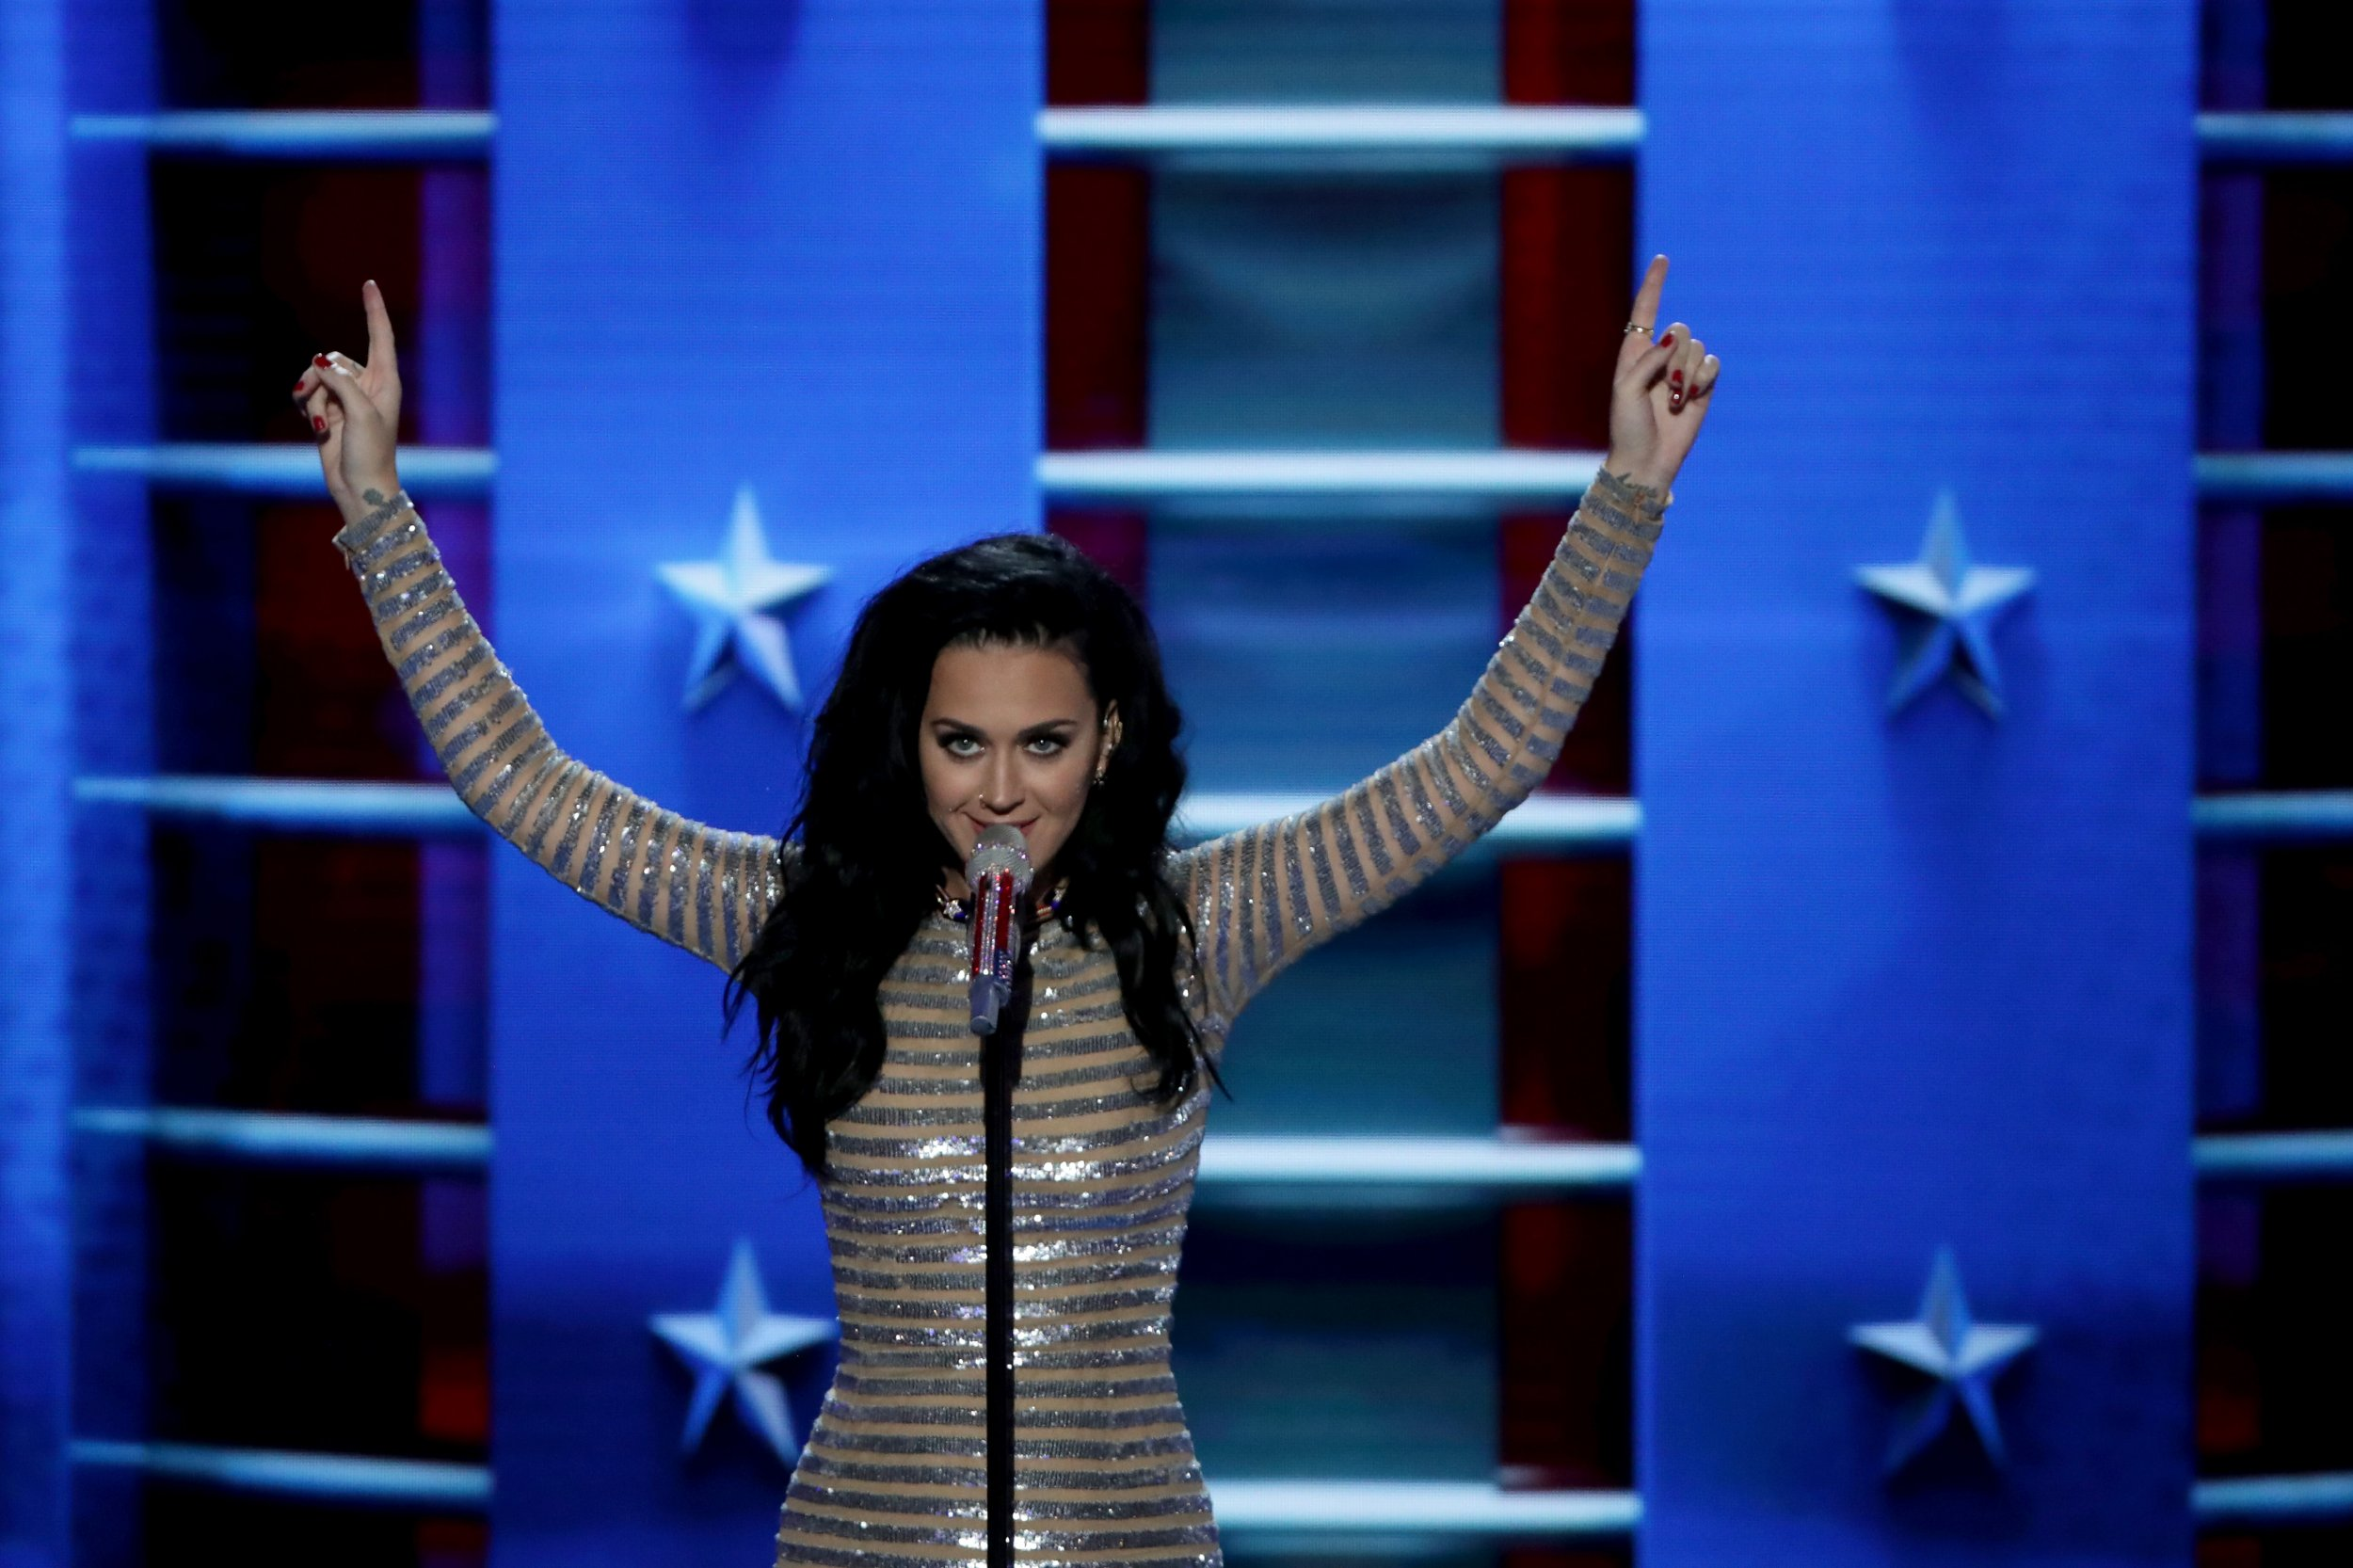 Katy Perry performs Rise